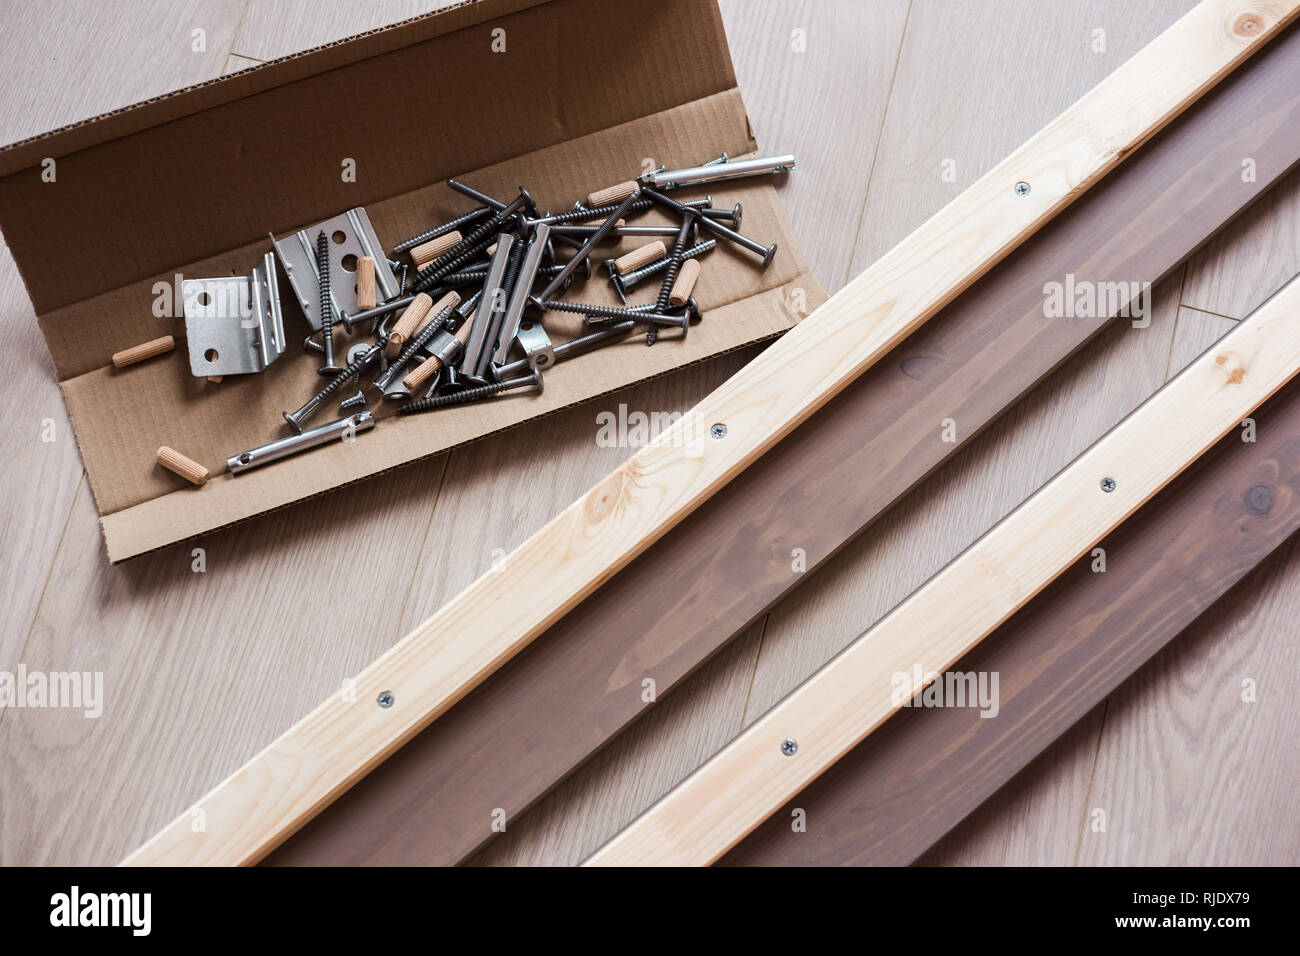 Furniture Fittings Screws And Other Parts In Open Craft Box Lying